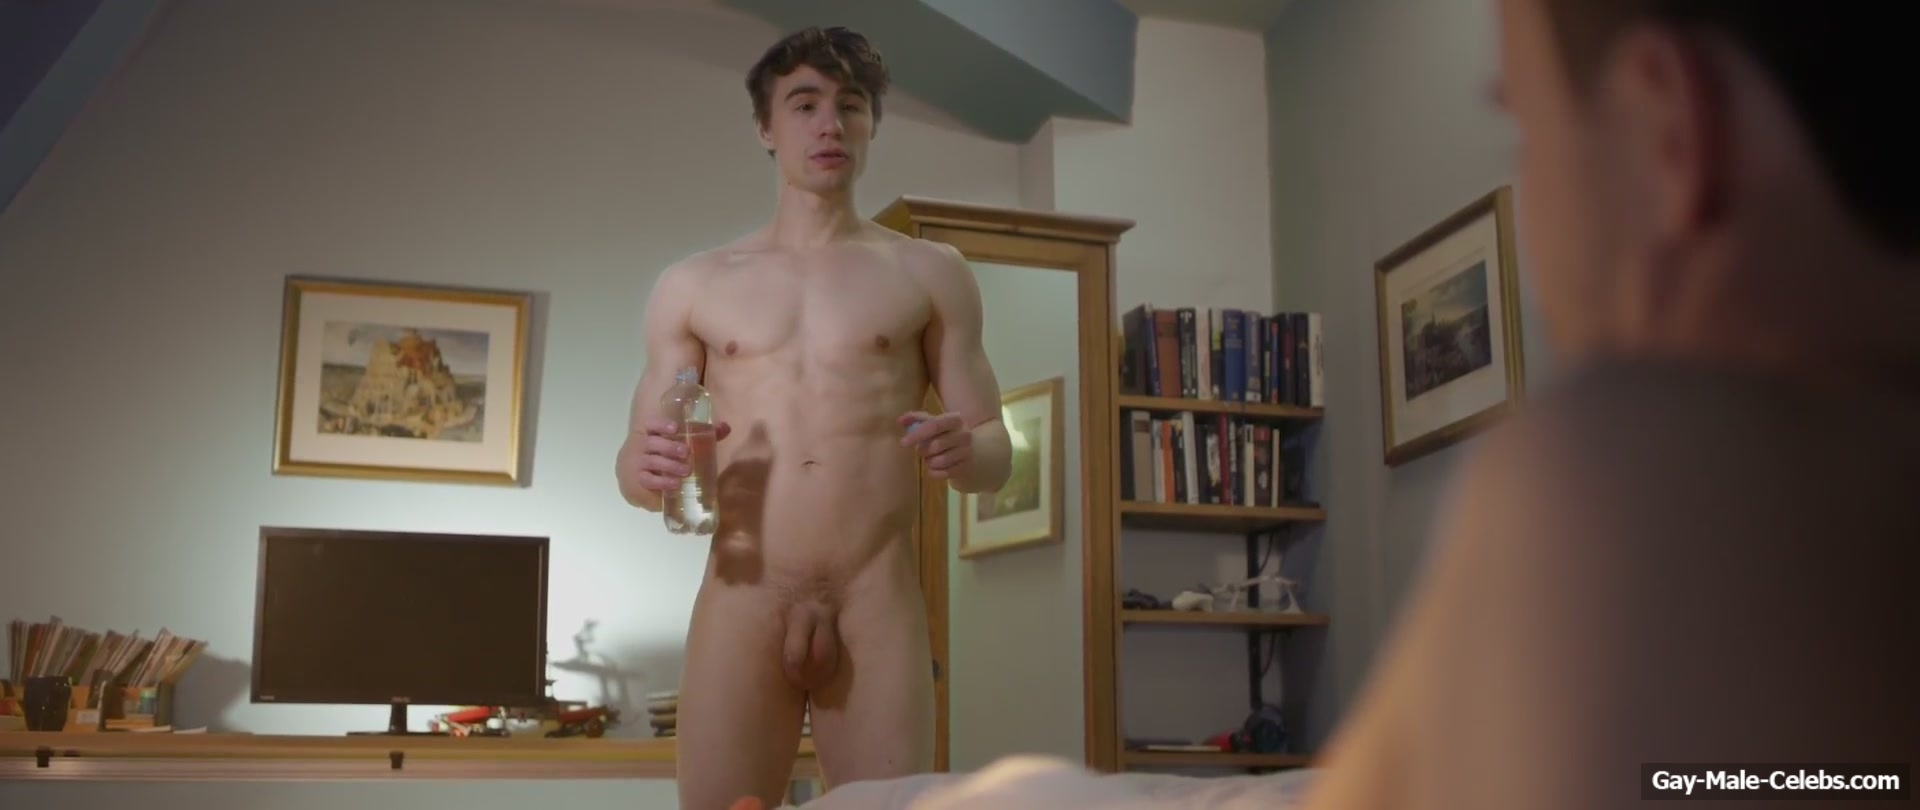 Naked male american-8034